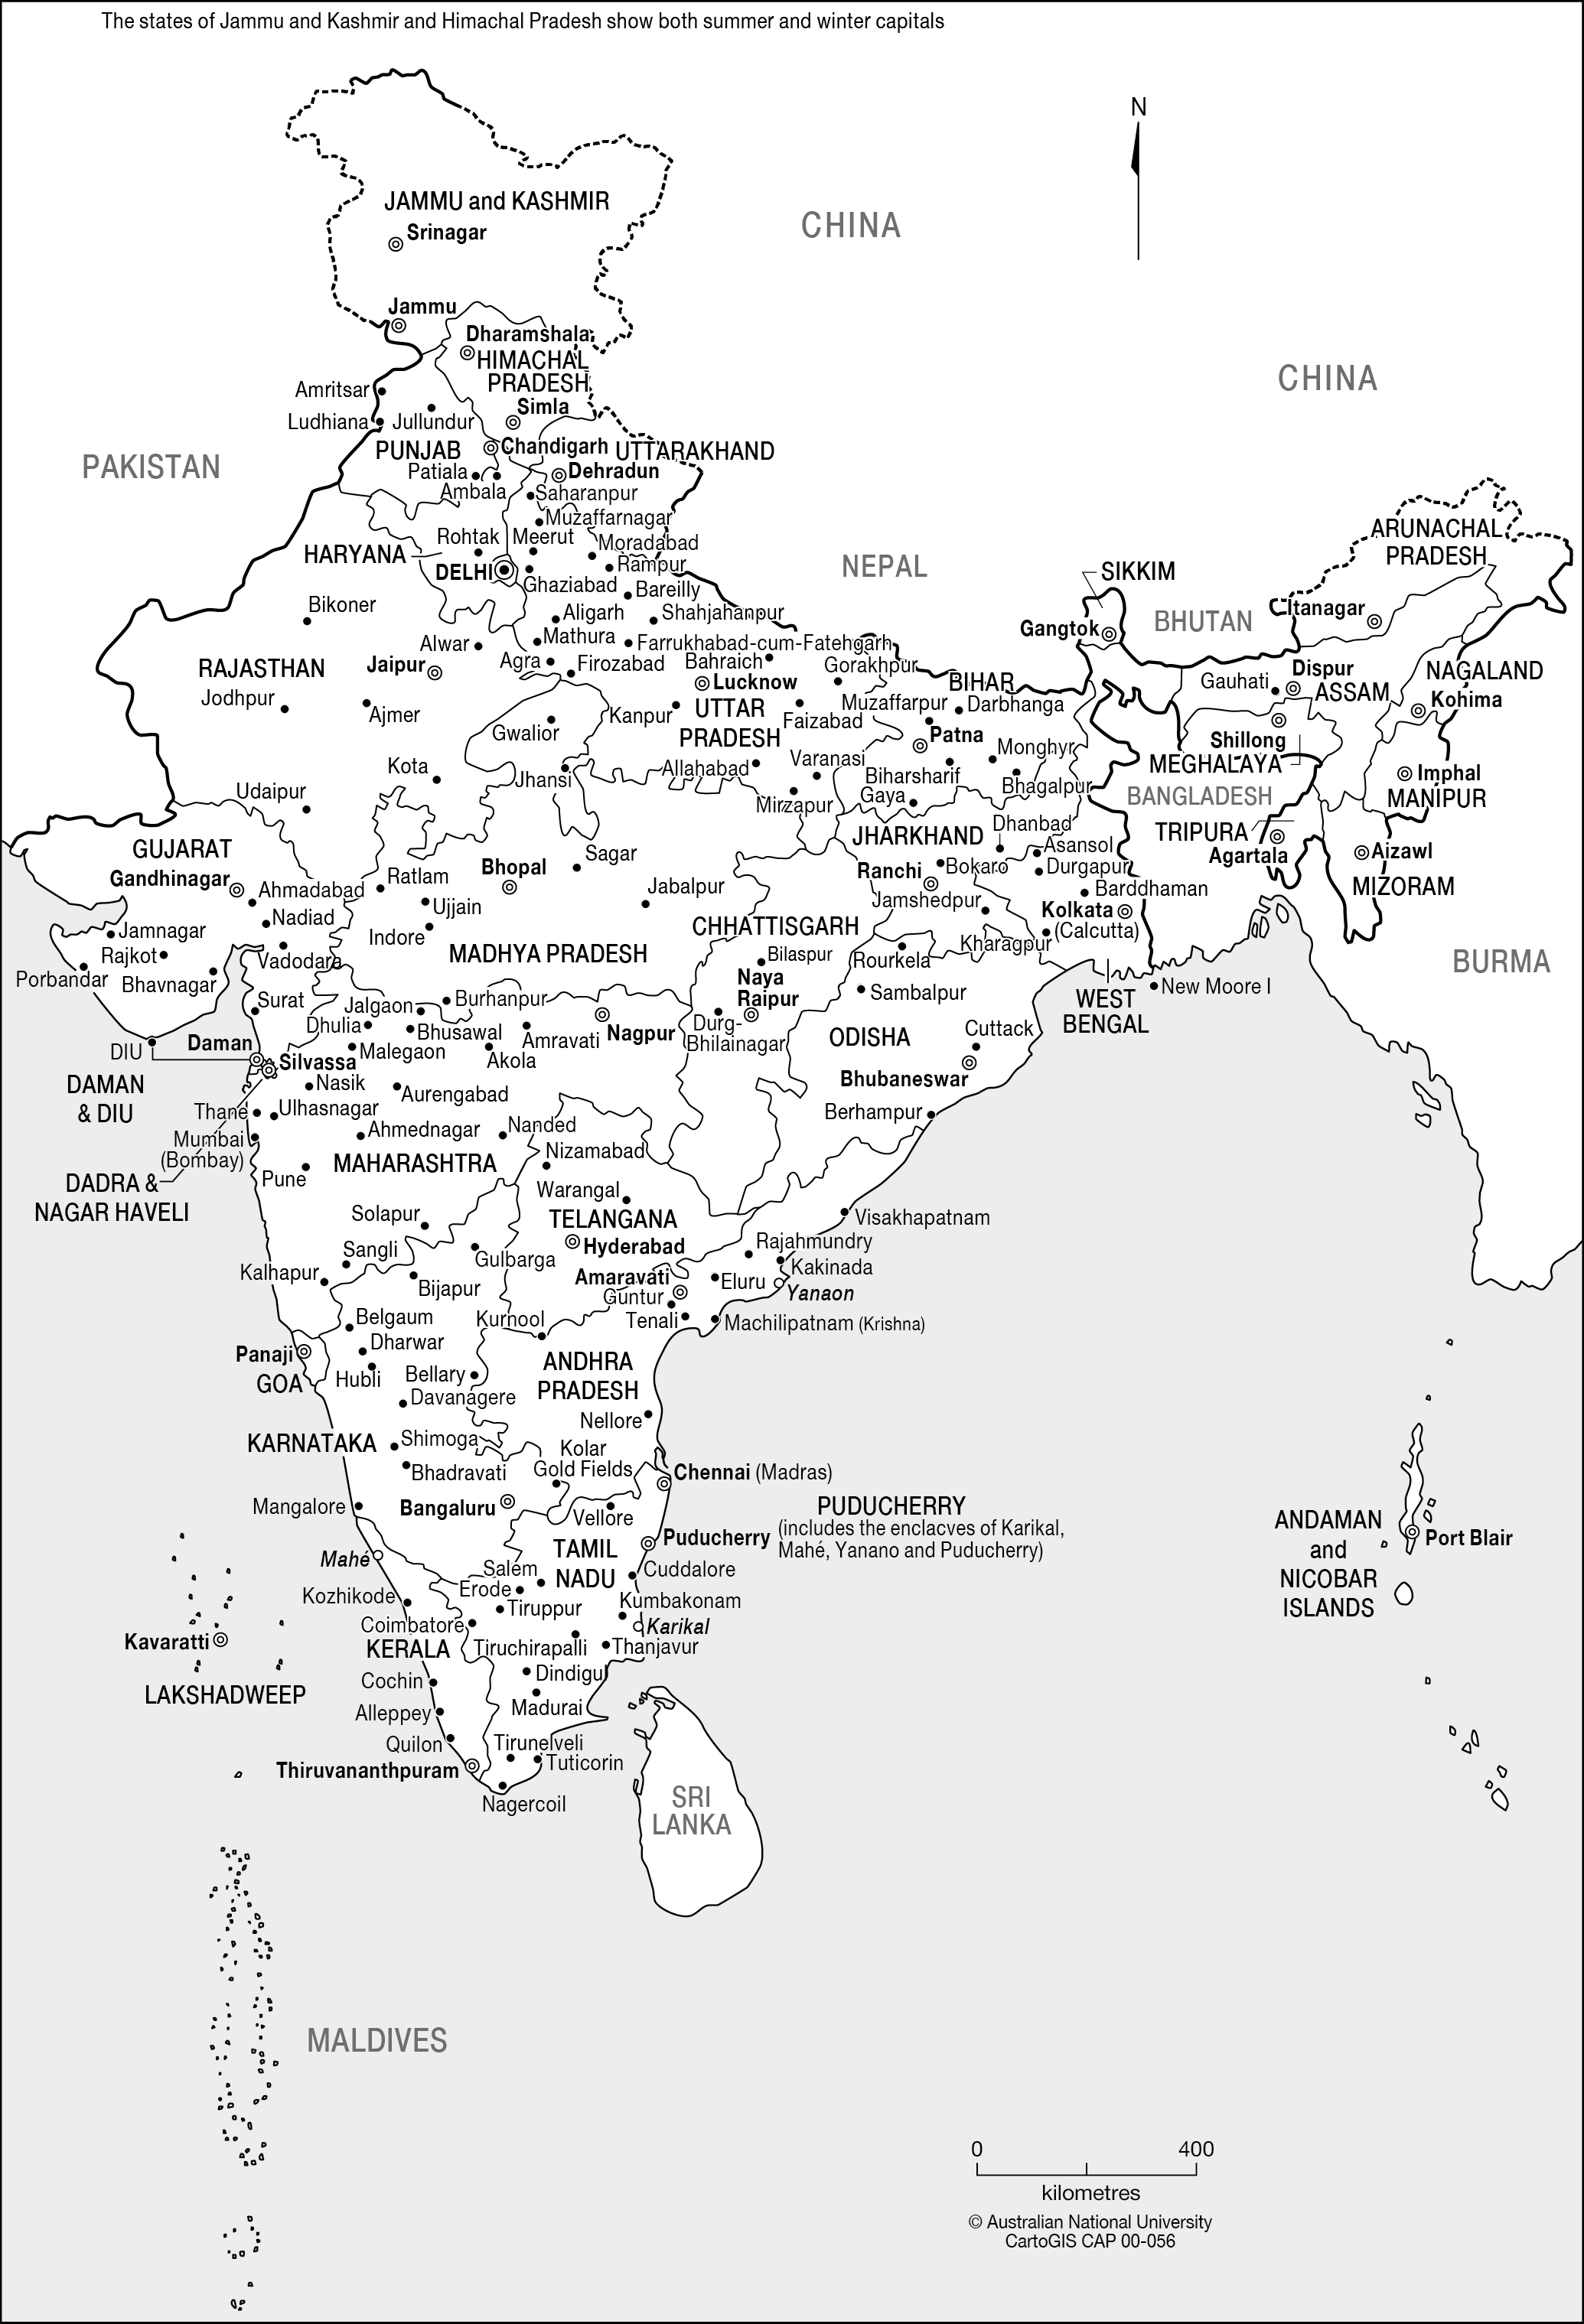 India - CartoGIS Services Maps Online - ANU